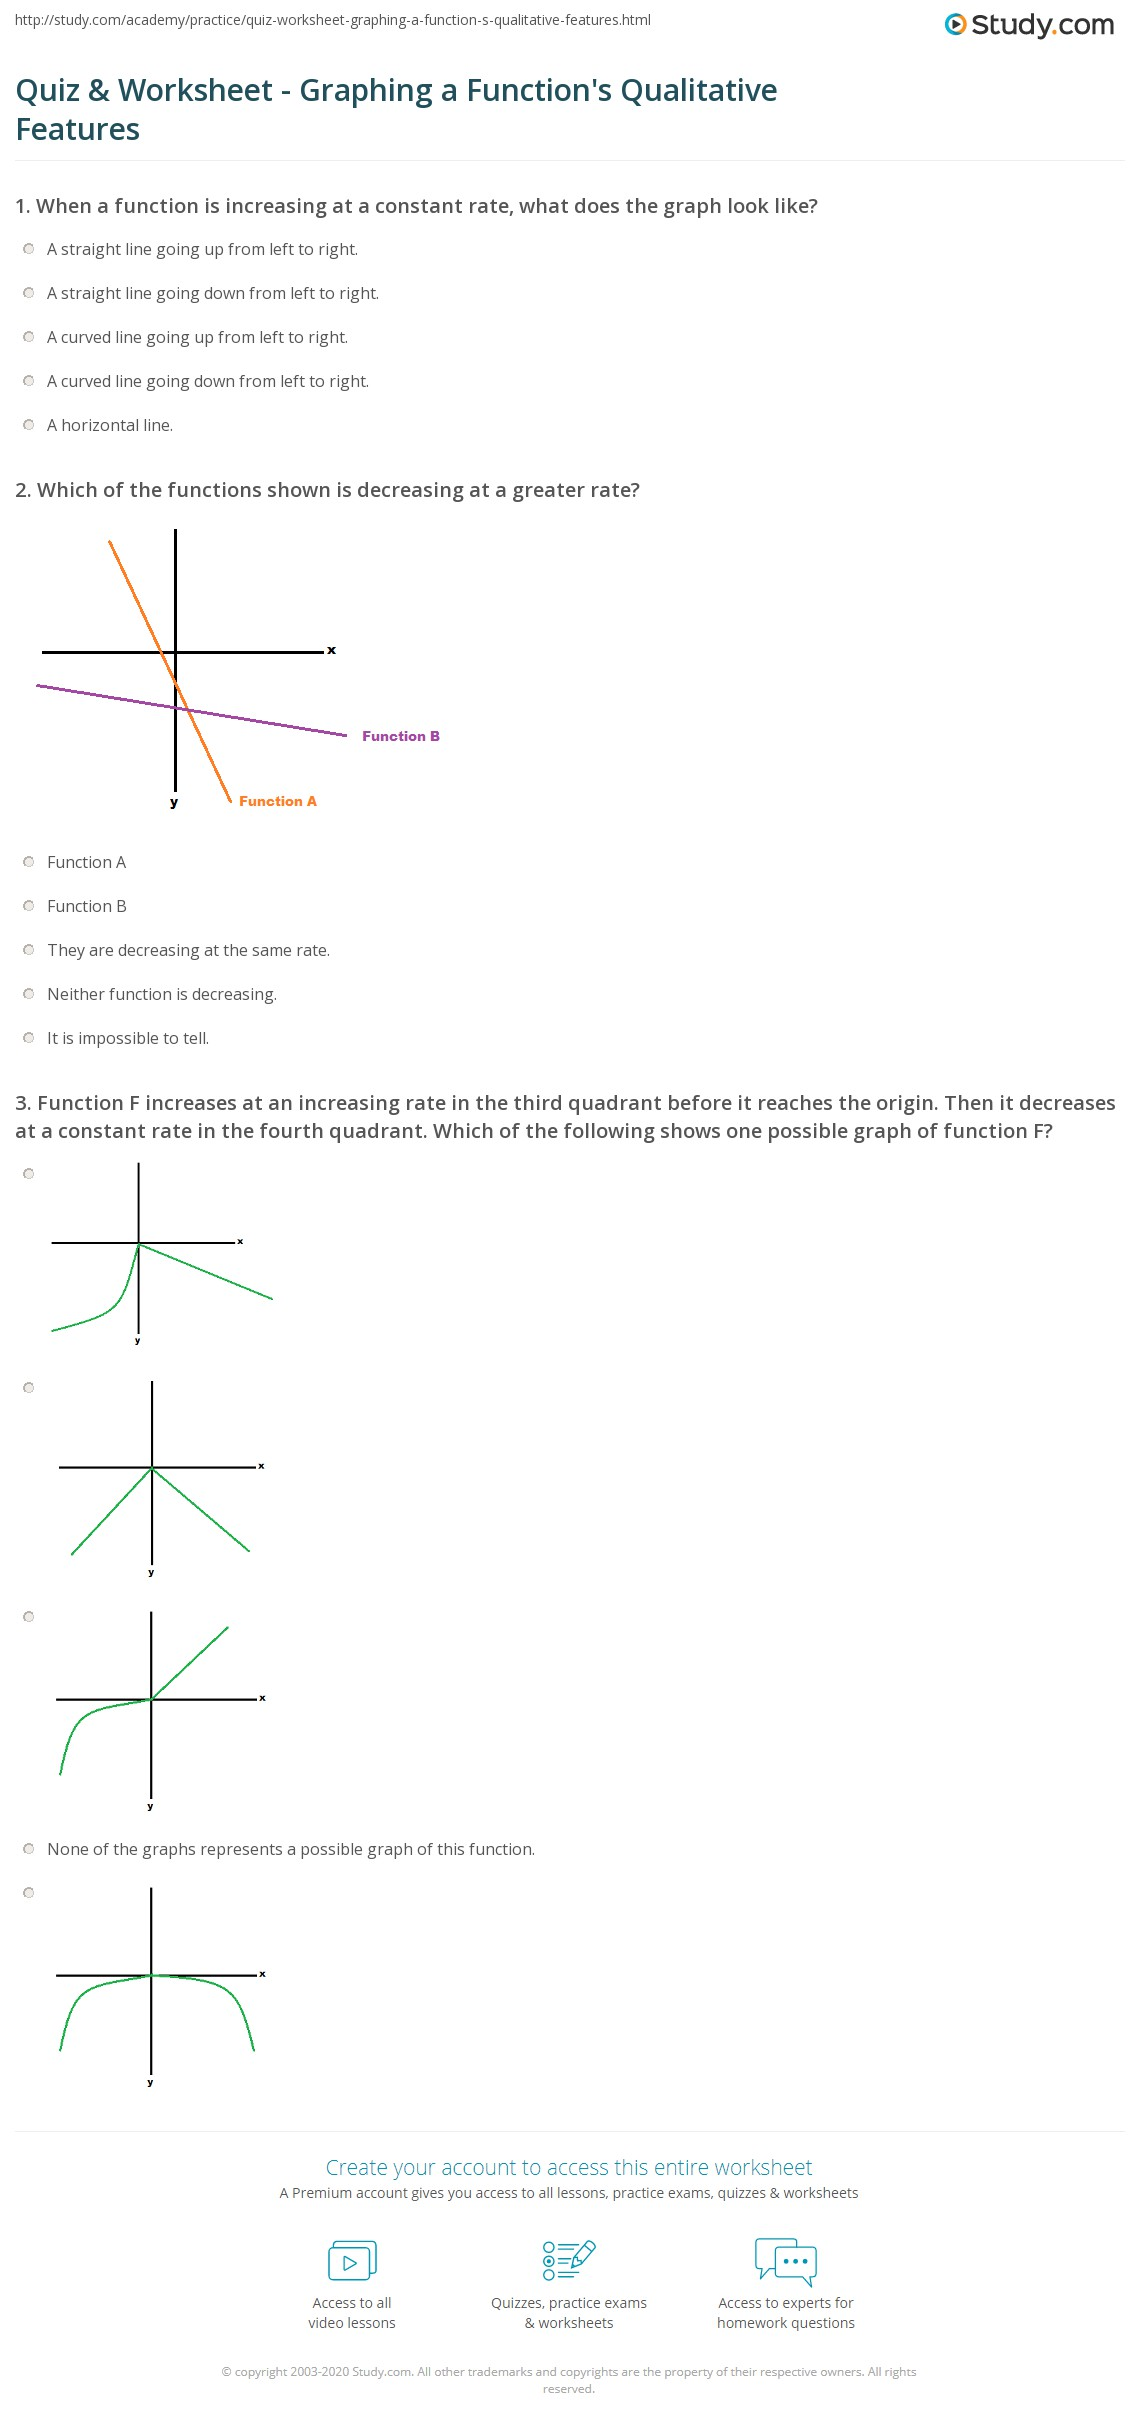 Quiz Worksheet Graphing A Functions Qualitative Features